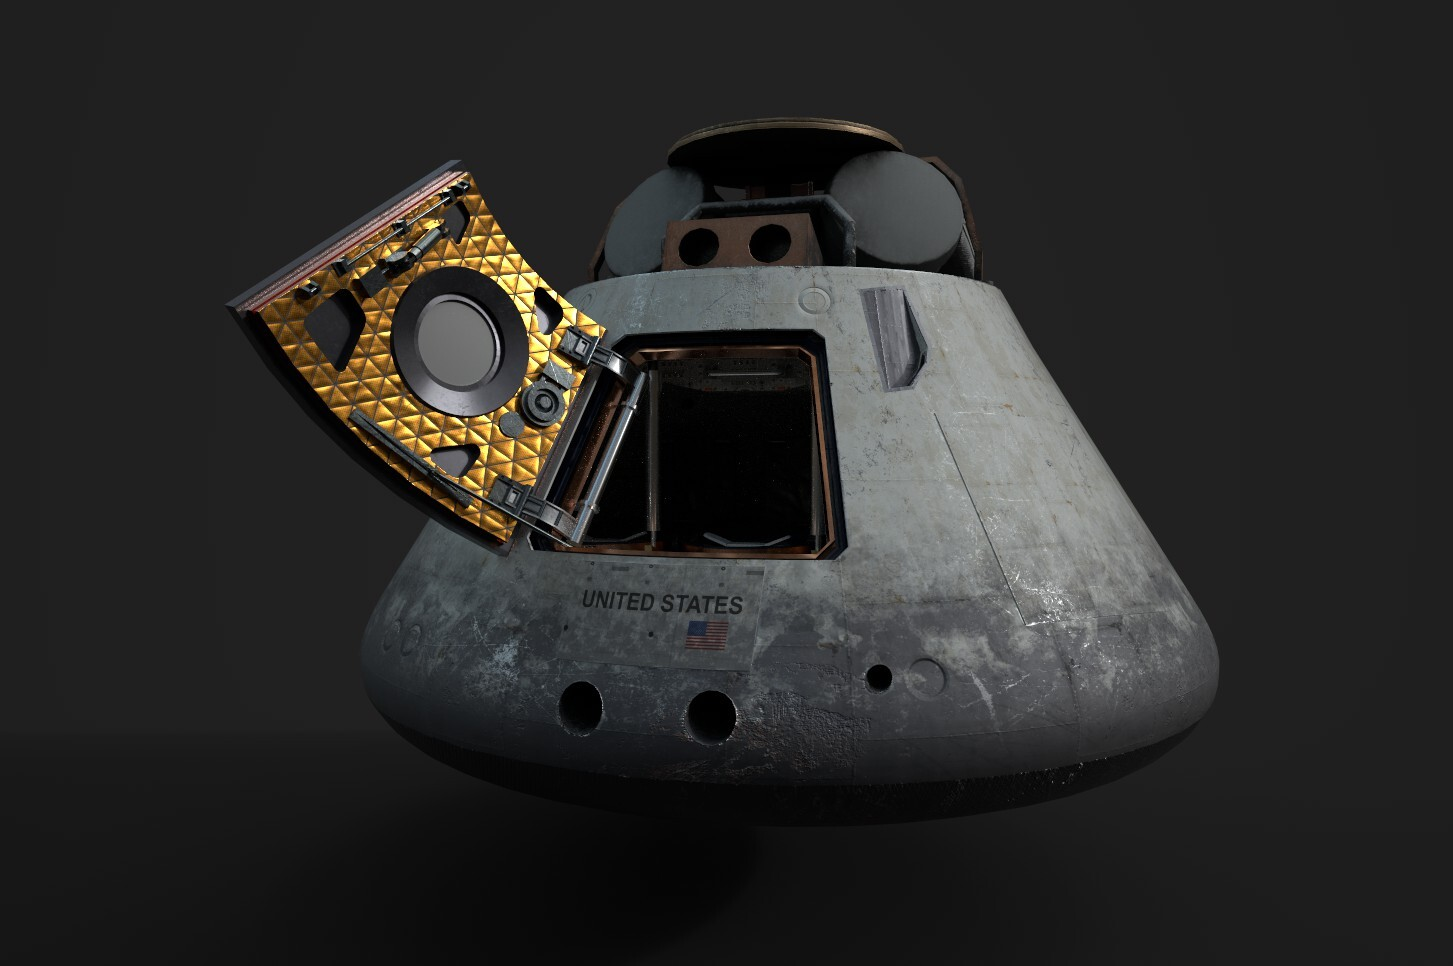 Model of a capsule for an animation I am working on in UE4